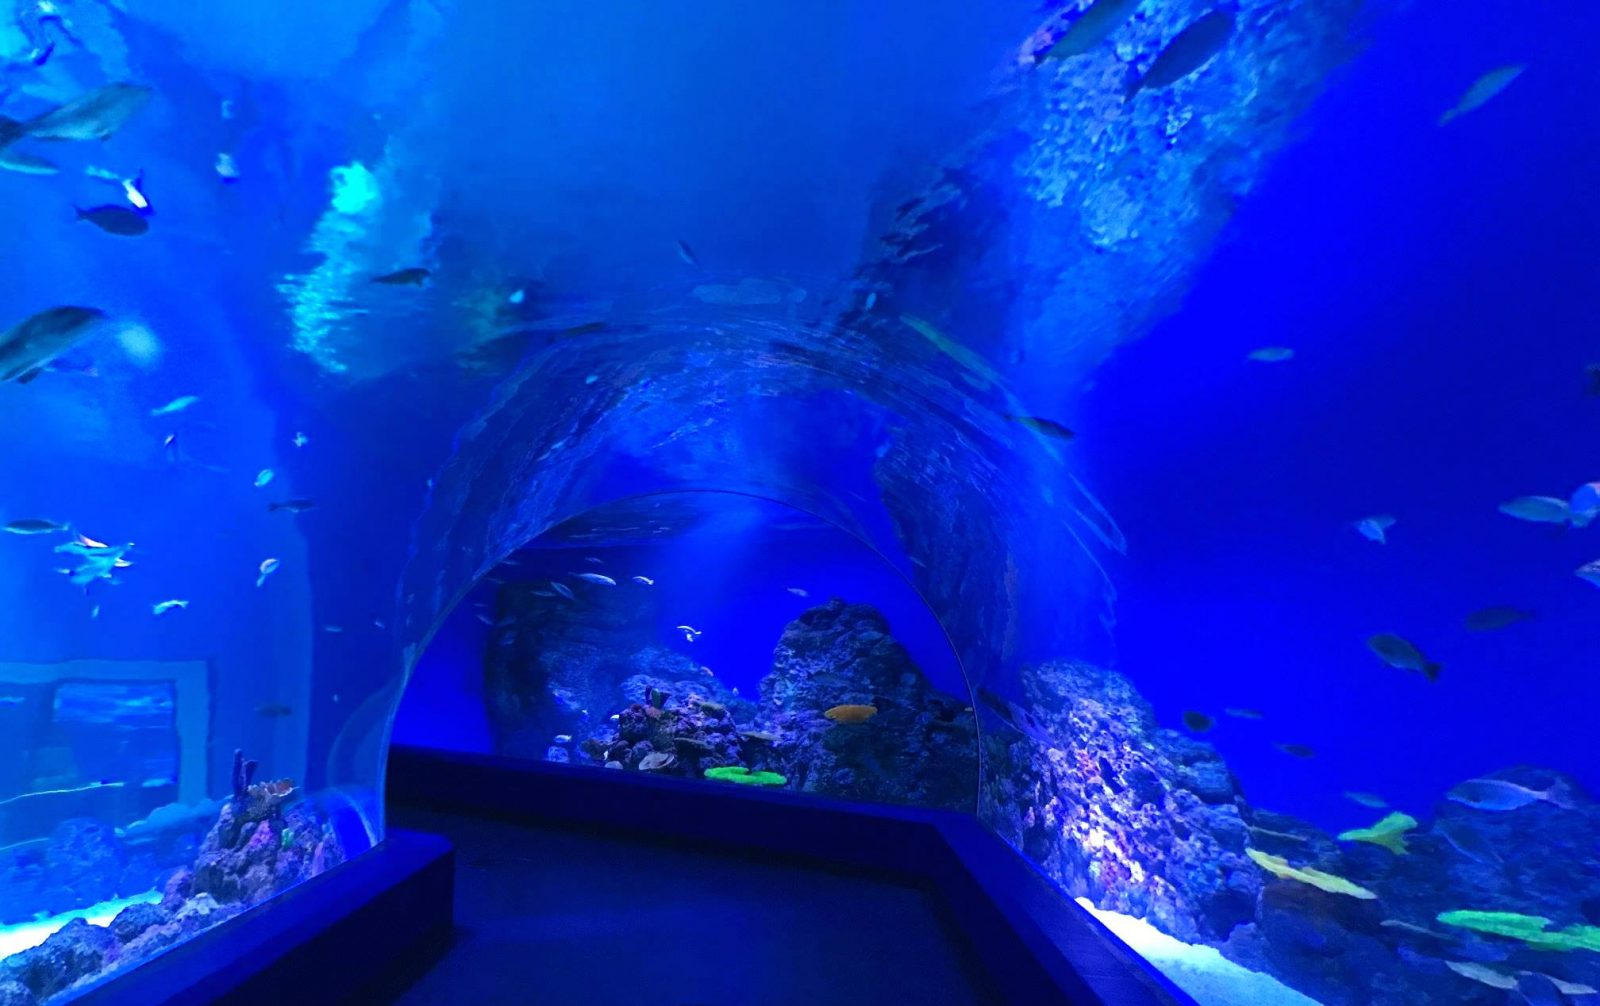 Aquarium Publik LED Lighting